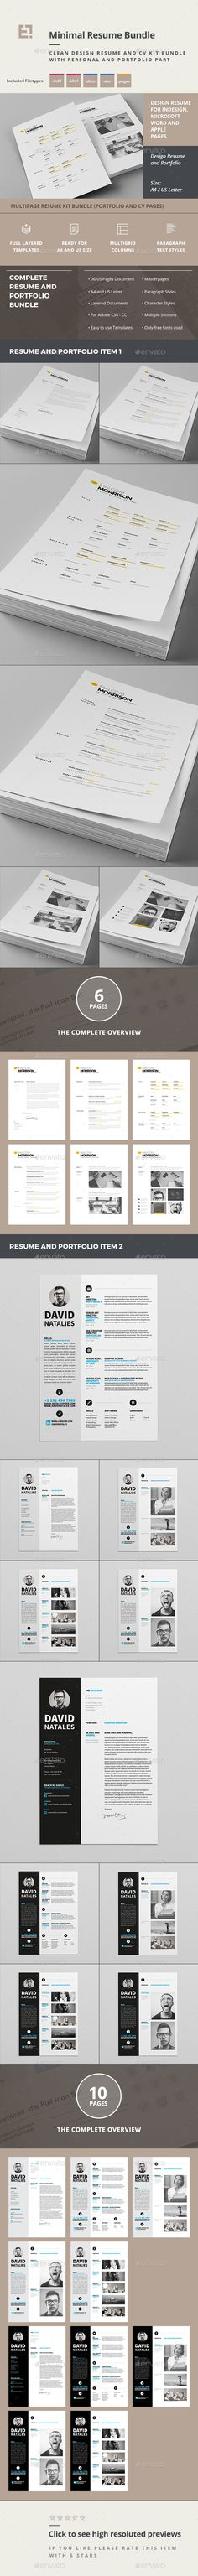 Modern Resume Set Modern Resume Indesign Resume